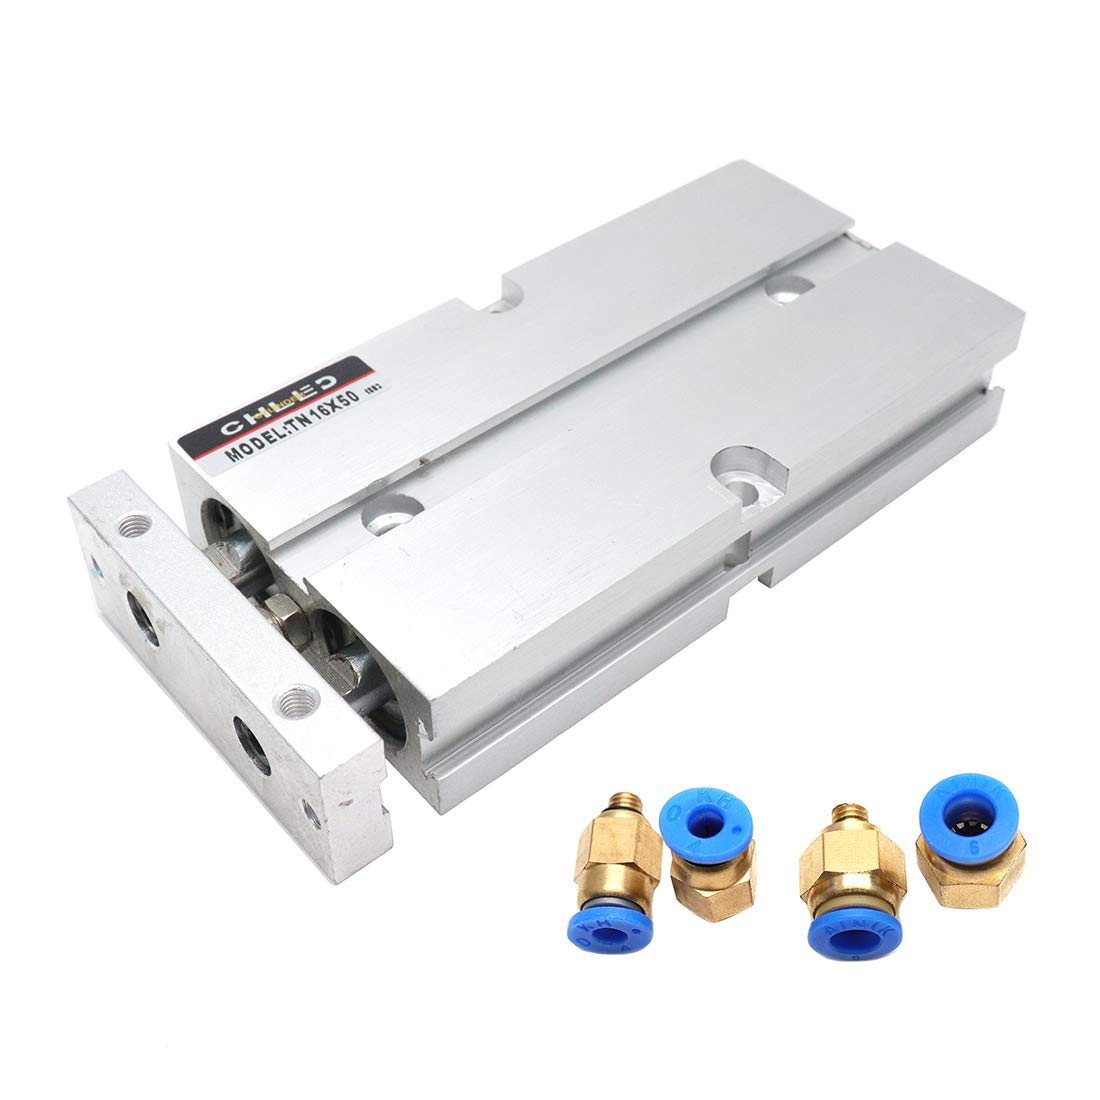 Sydien Aluminum Alloy Pneumatic Air Cylinder 16mm Bore 50mm Stroke Double Action Double Rod with 4Pcs Straight Pneumatic Quick Fitting (TN16X50)